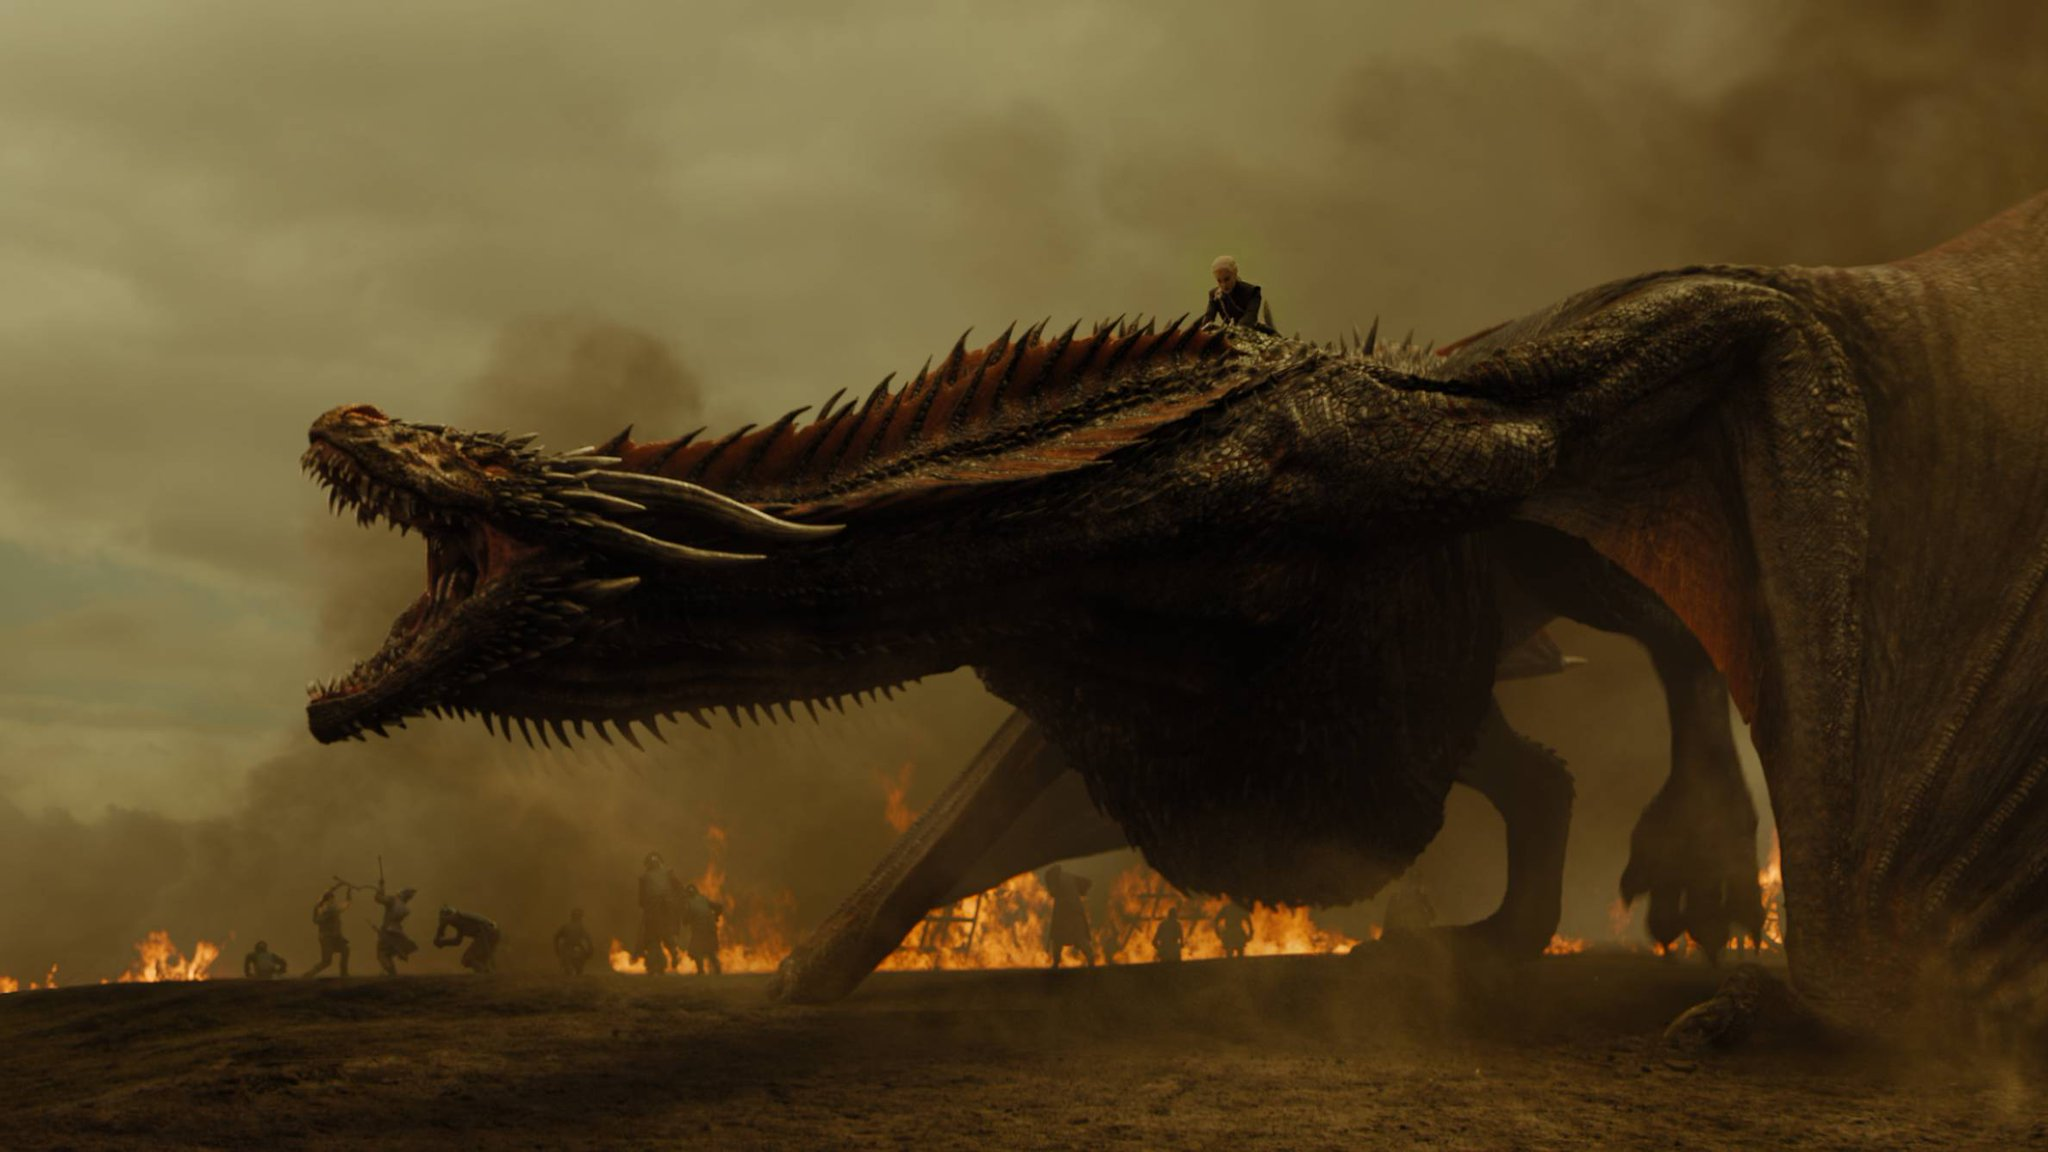 Here's how #GameOfThrones pulled off its massive dragon attack: https://t.co/ddLJ2sGVFh https://t.co/XTHgnJEGln